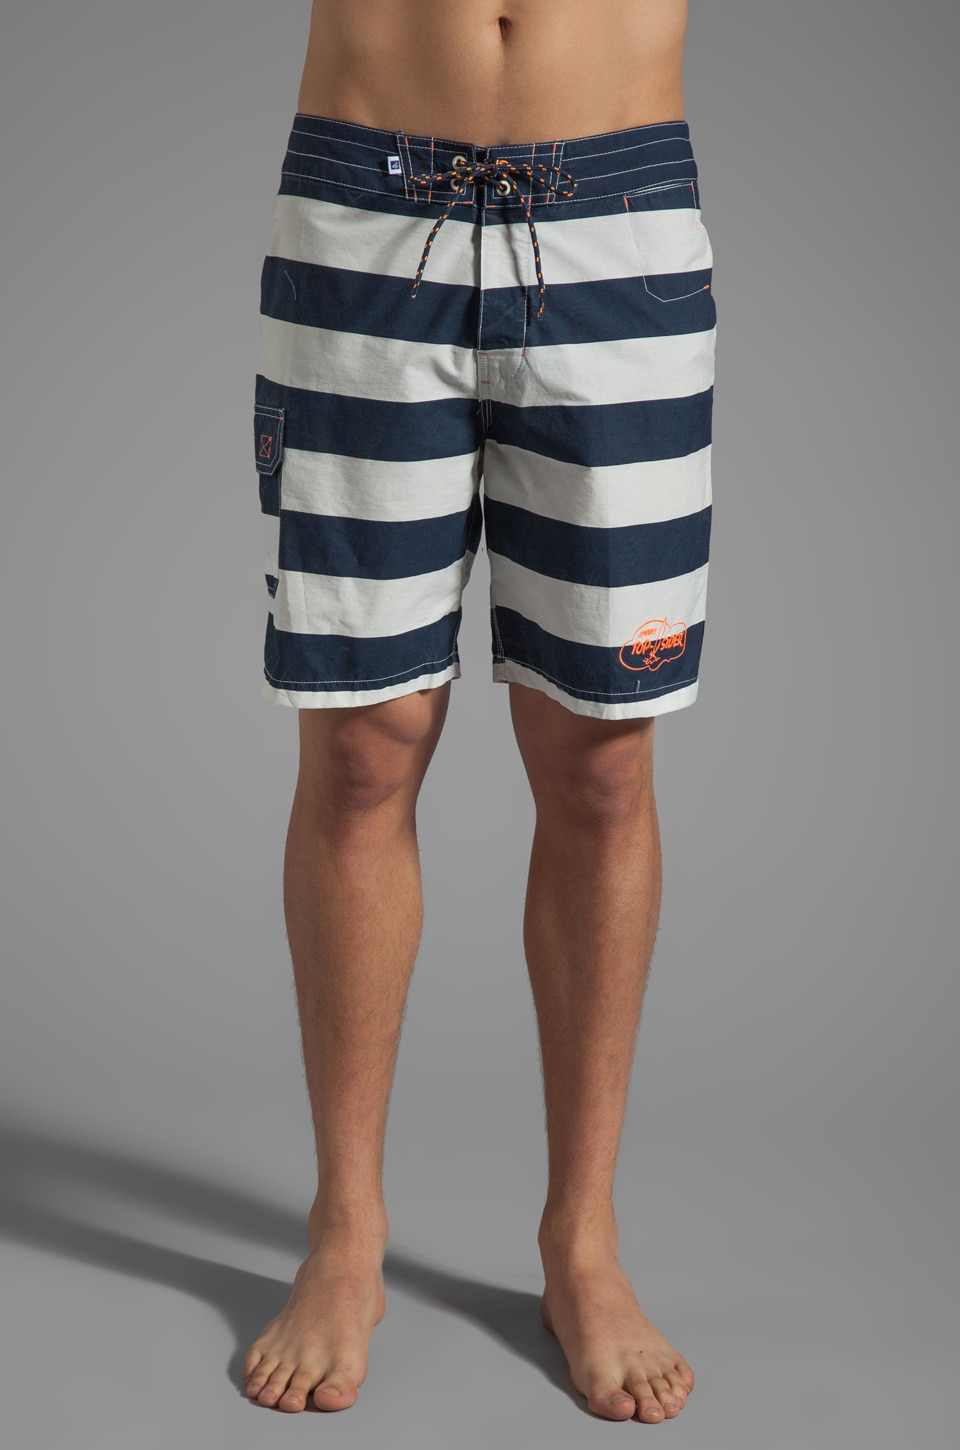 Sperry Top-Sider On Cloud 9 Boardshort en Marine